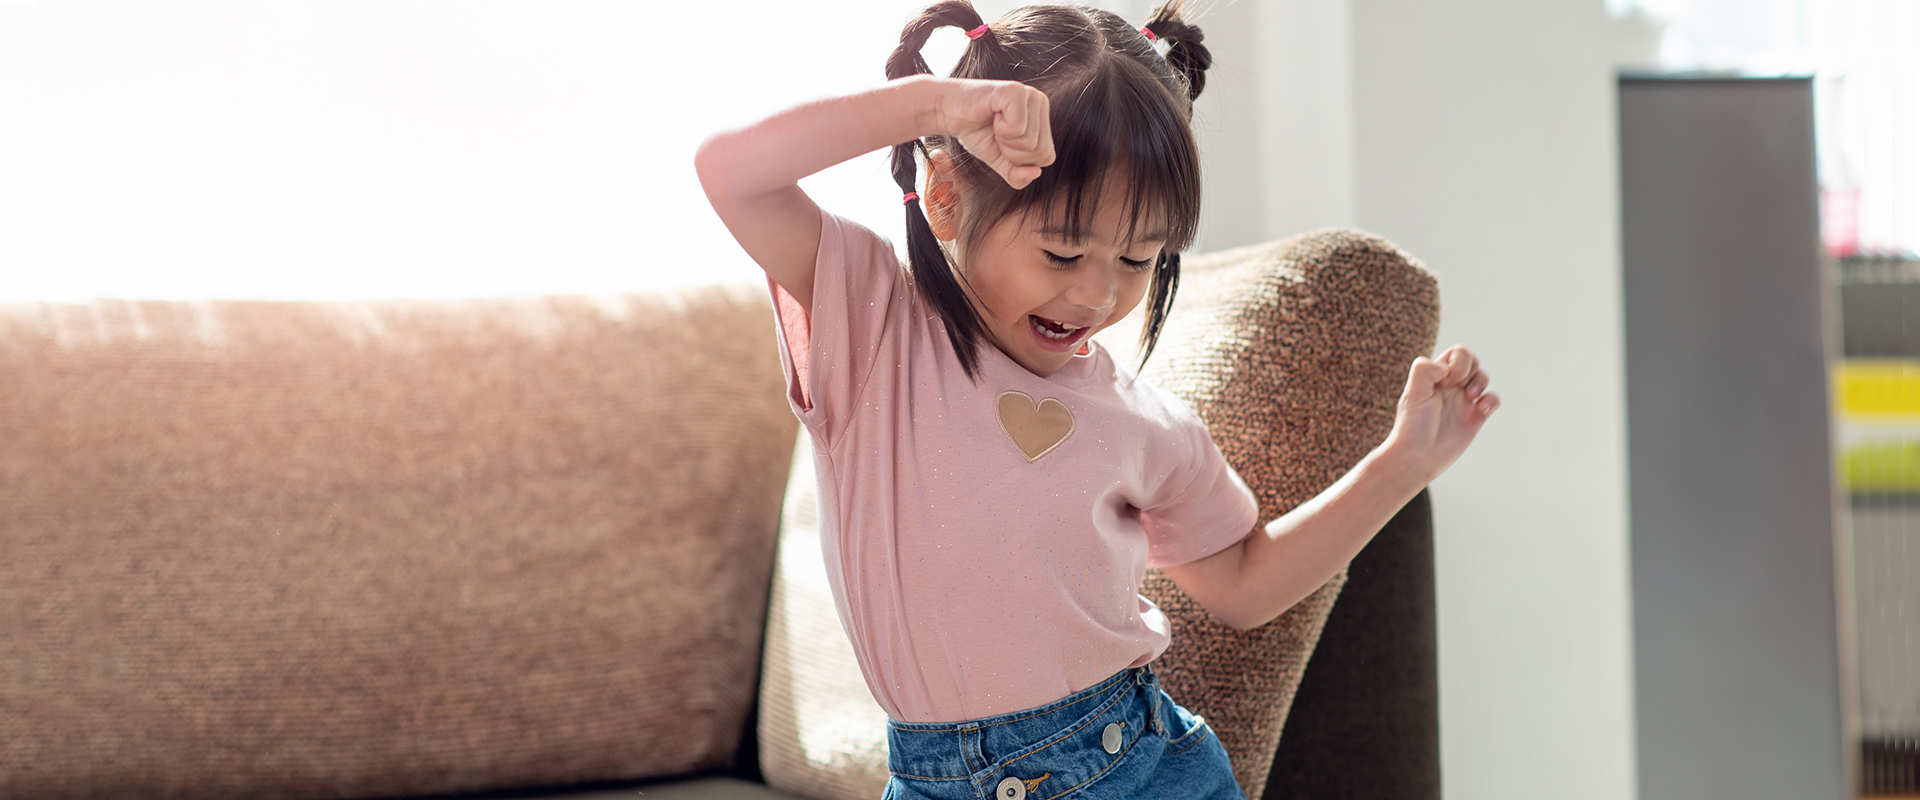 little girl with scoliosis who is a patient of Dr. Krishn Sharma at Brain and Spine Surgeons of New York scoliosis program